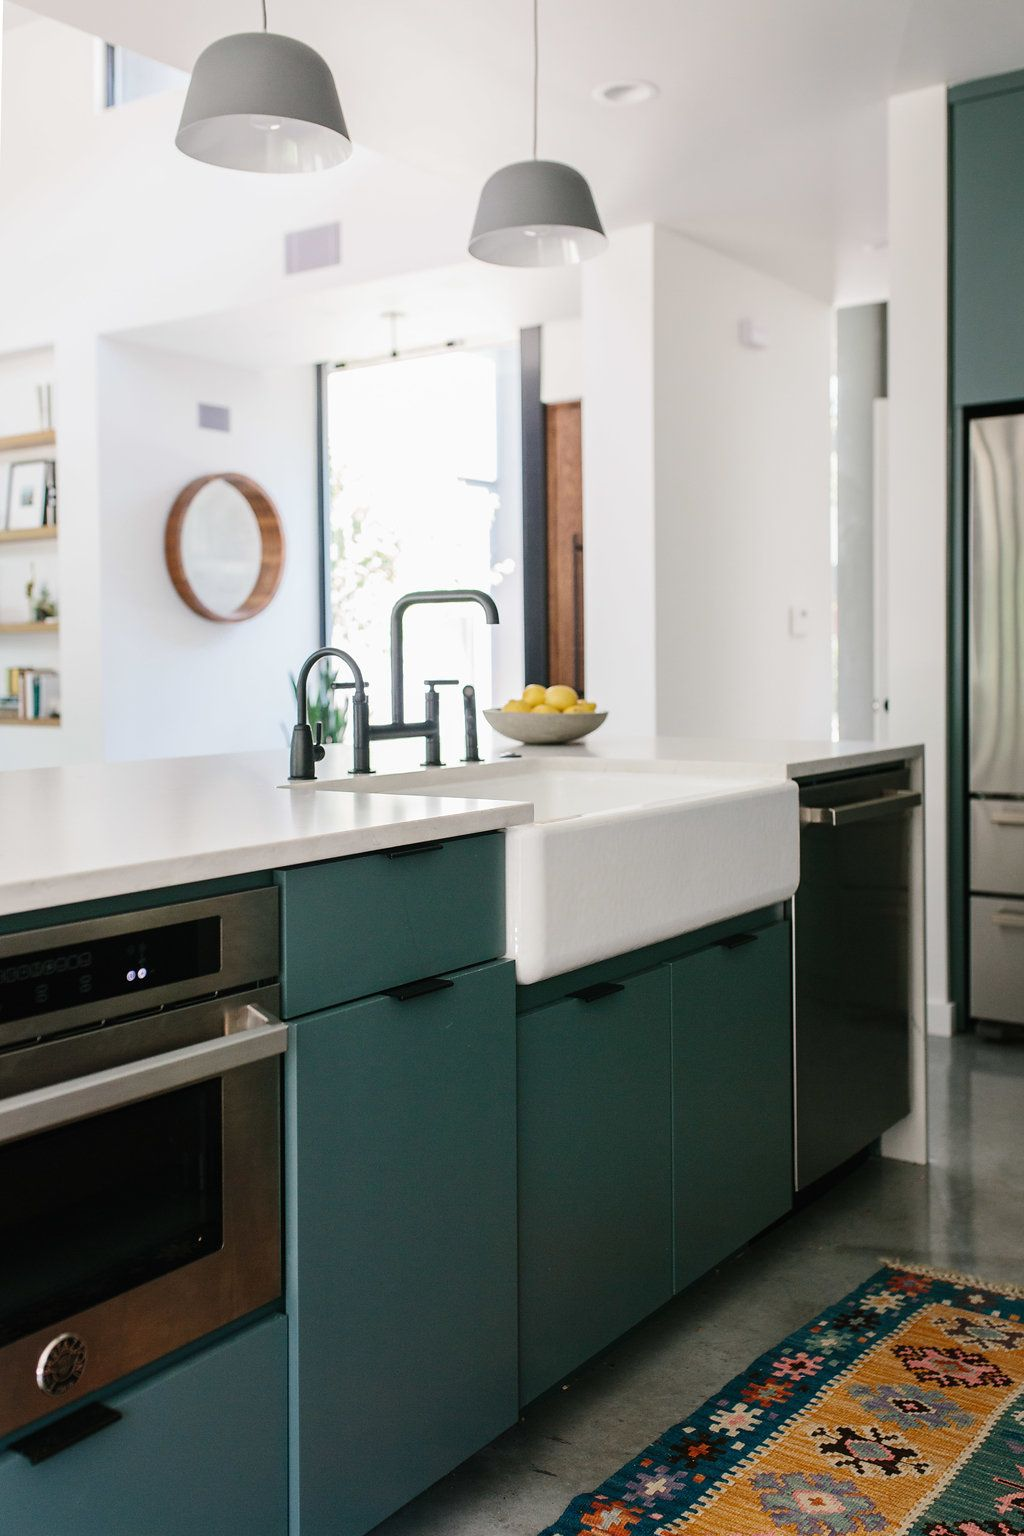 Our Austin Casa The Kitchen Reveal The Effortless Chic Chic Kitchen Kitchen Design Green Kitchen Cabinets